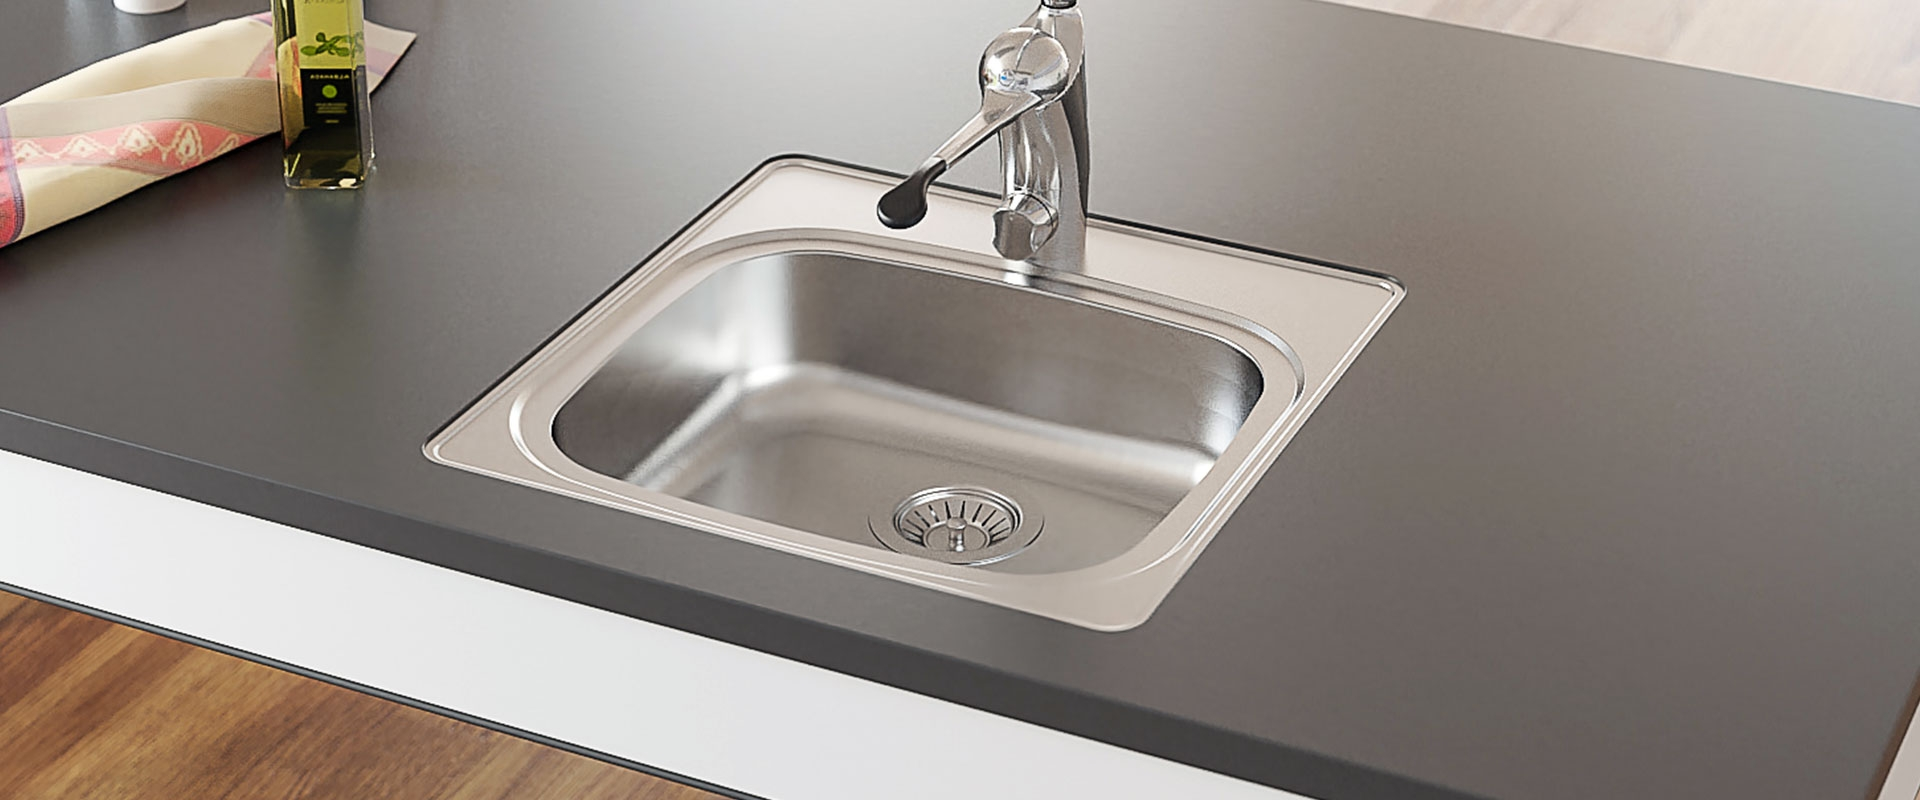 Inset Kitchen Sink ES11 - 49.6 cm